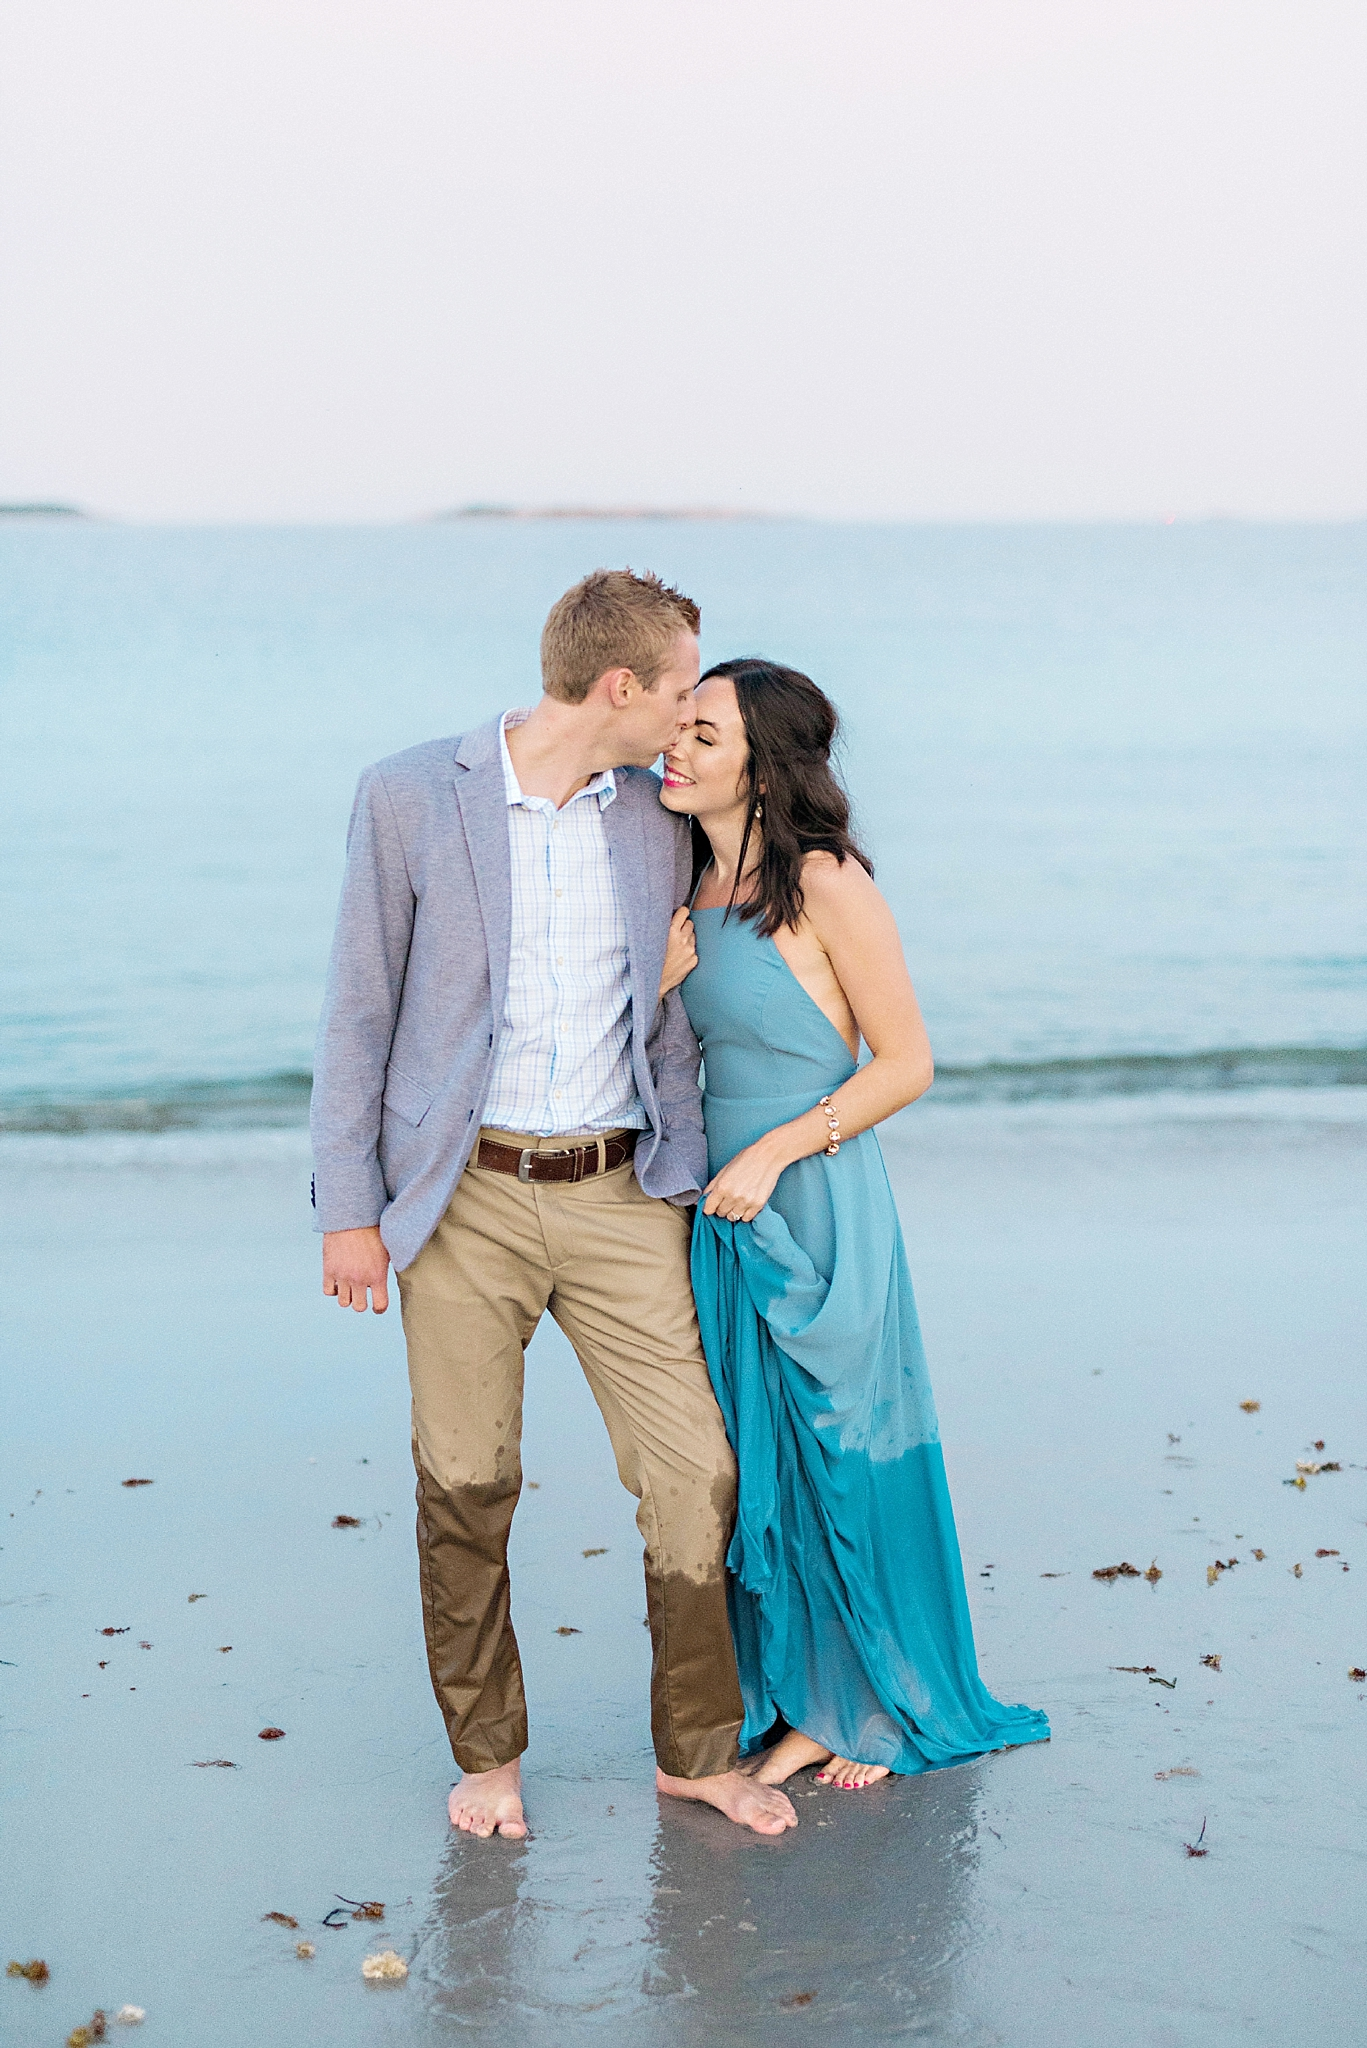 Romantic Seaside Beach Engagement Shoot in Lulu's long flowy maxy dress_045.jpg